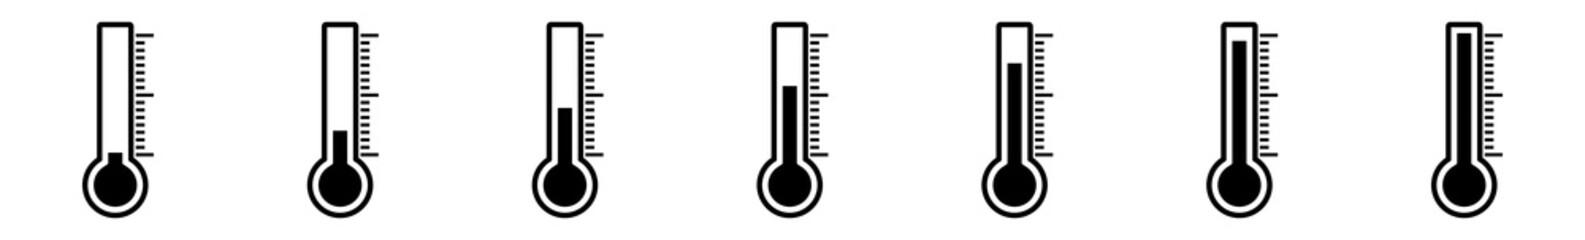 Thermometer Icon Black | Temperature Scale Symbol | Instrument Logo | Warm Cold Illustration | Weather Sign | Isolated | Variations